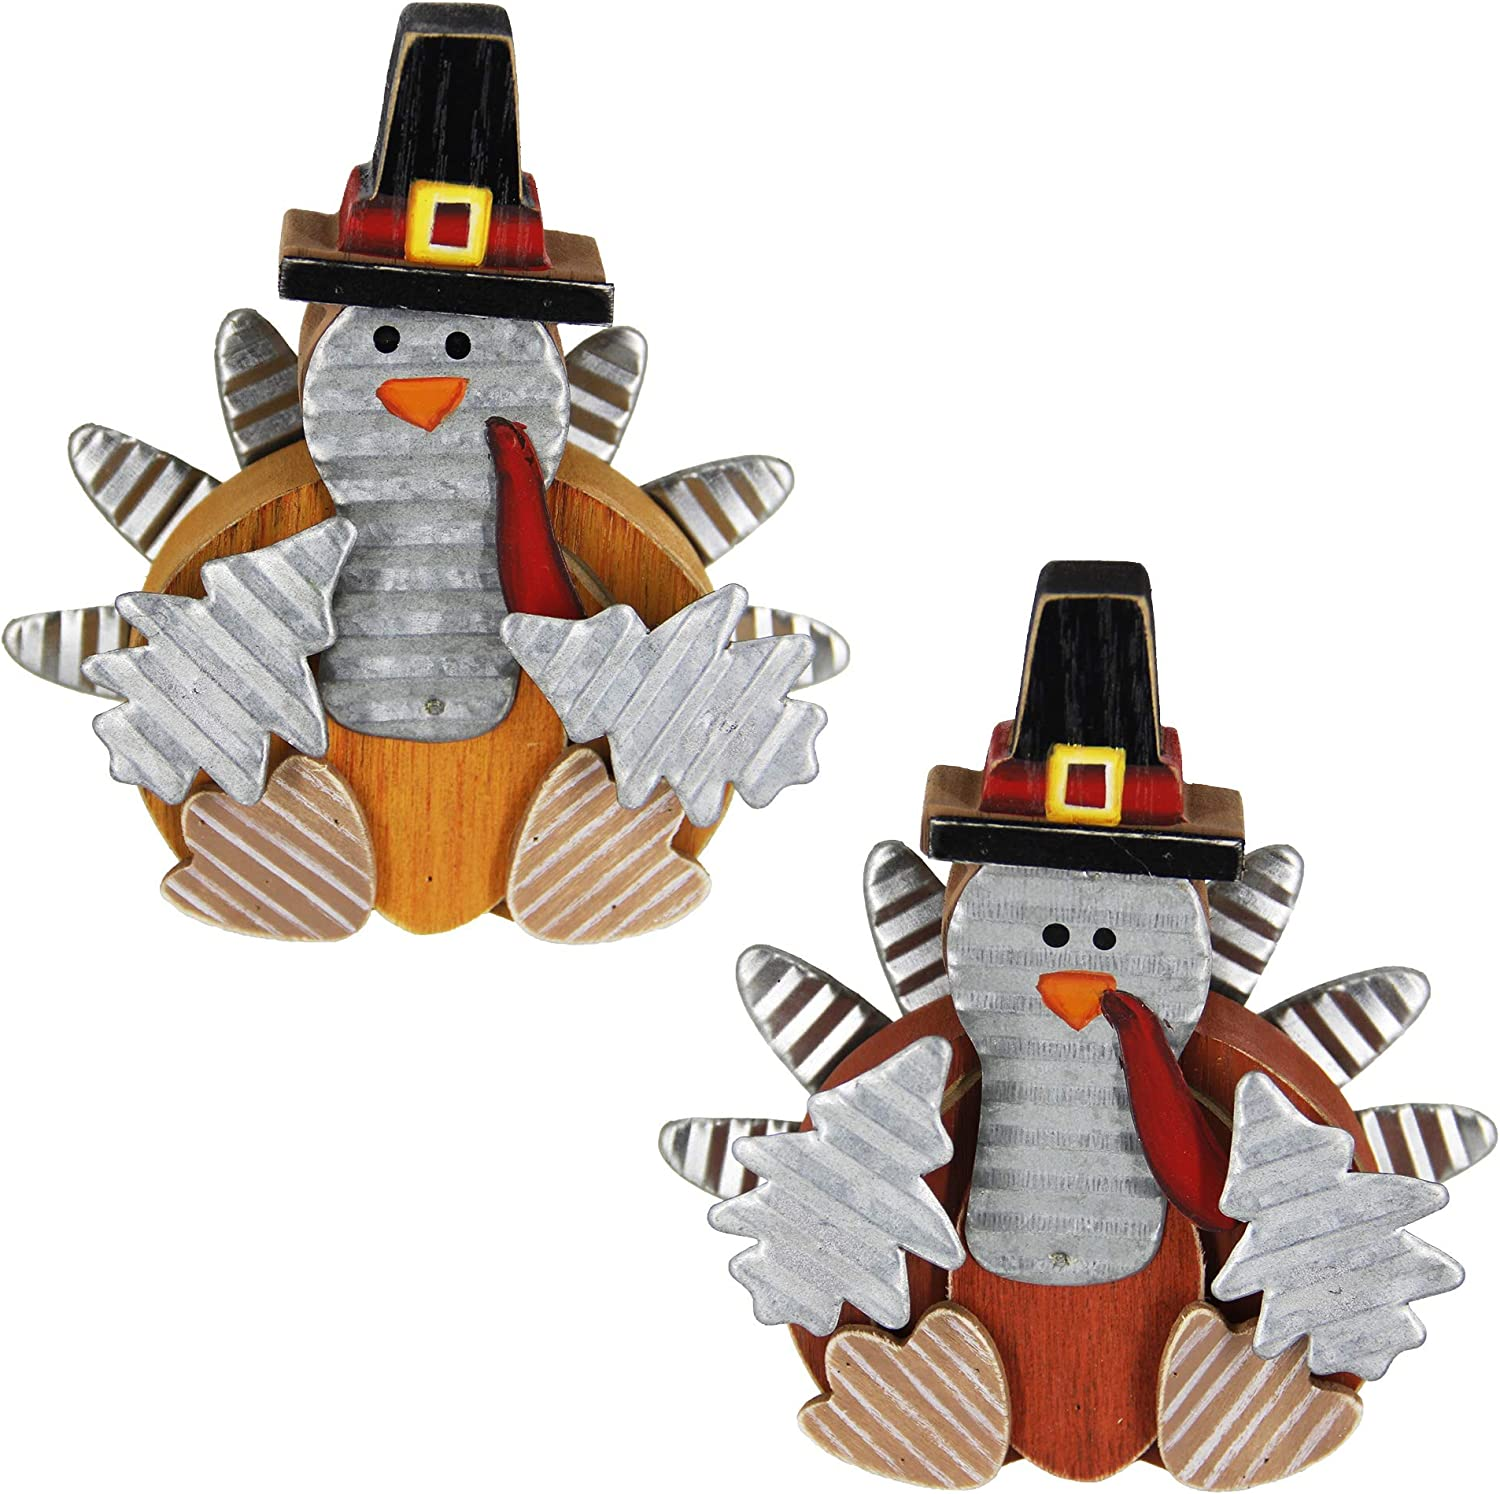 Zcaukya Thanksgiving Turkey Decoration, Wooden Indoor Standing Tabletop Turkey Decor for Home Office Bedroom Kitchen Thanksgiving Harvest Day Decorations, Set of 2